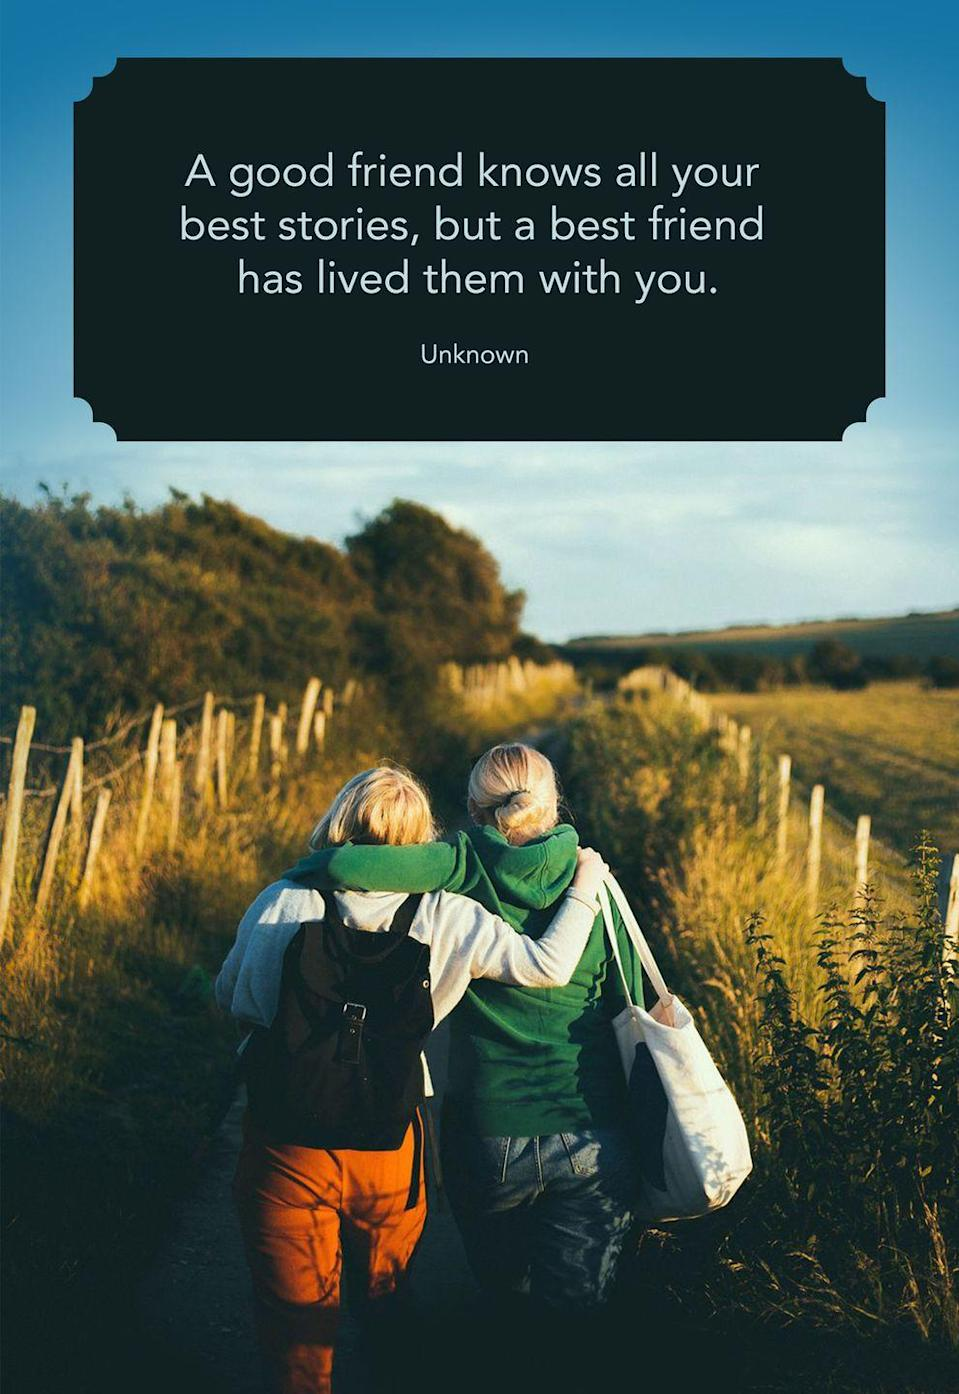 "<p>""A good friend knows all your best stories, but a best friend has lived them with you.""</p>"